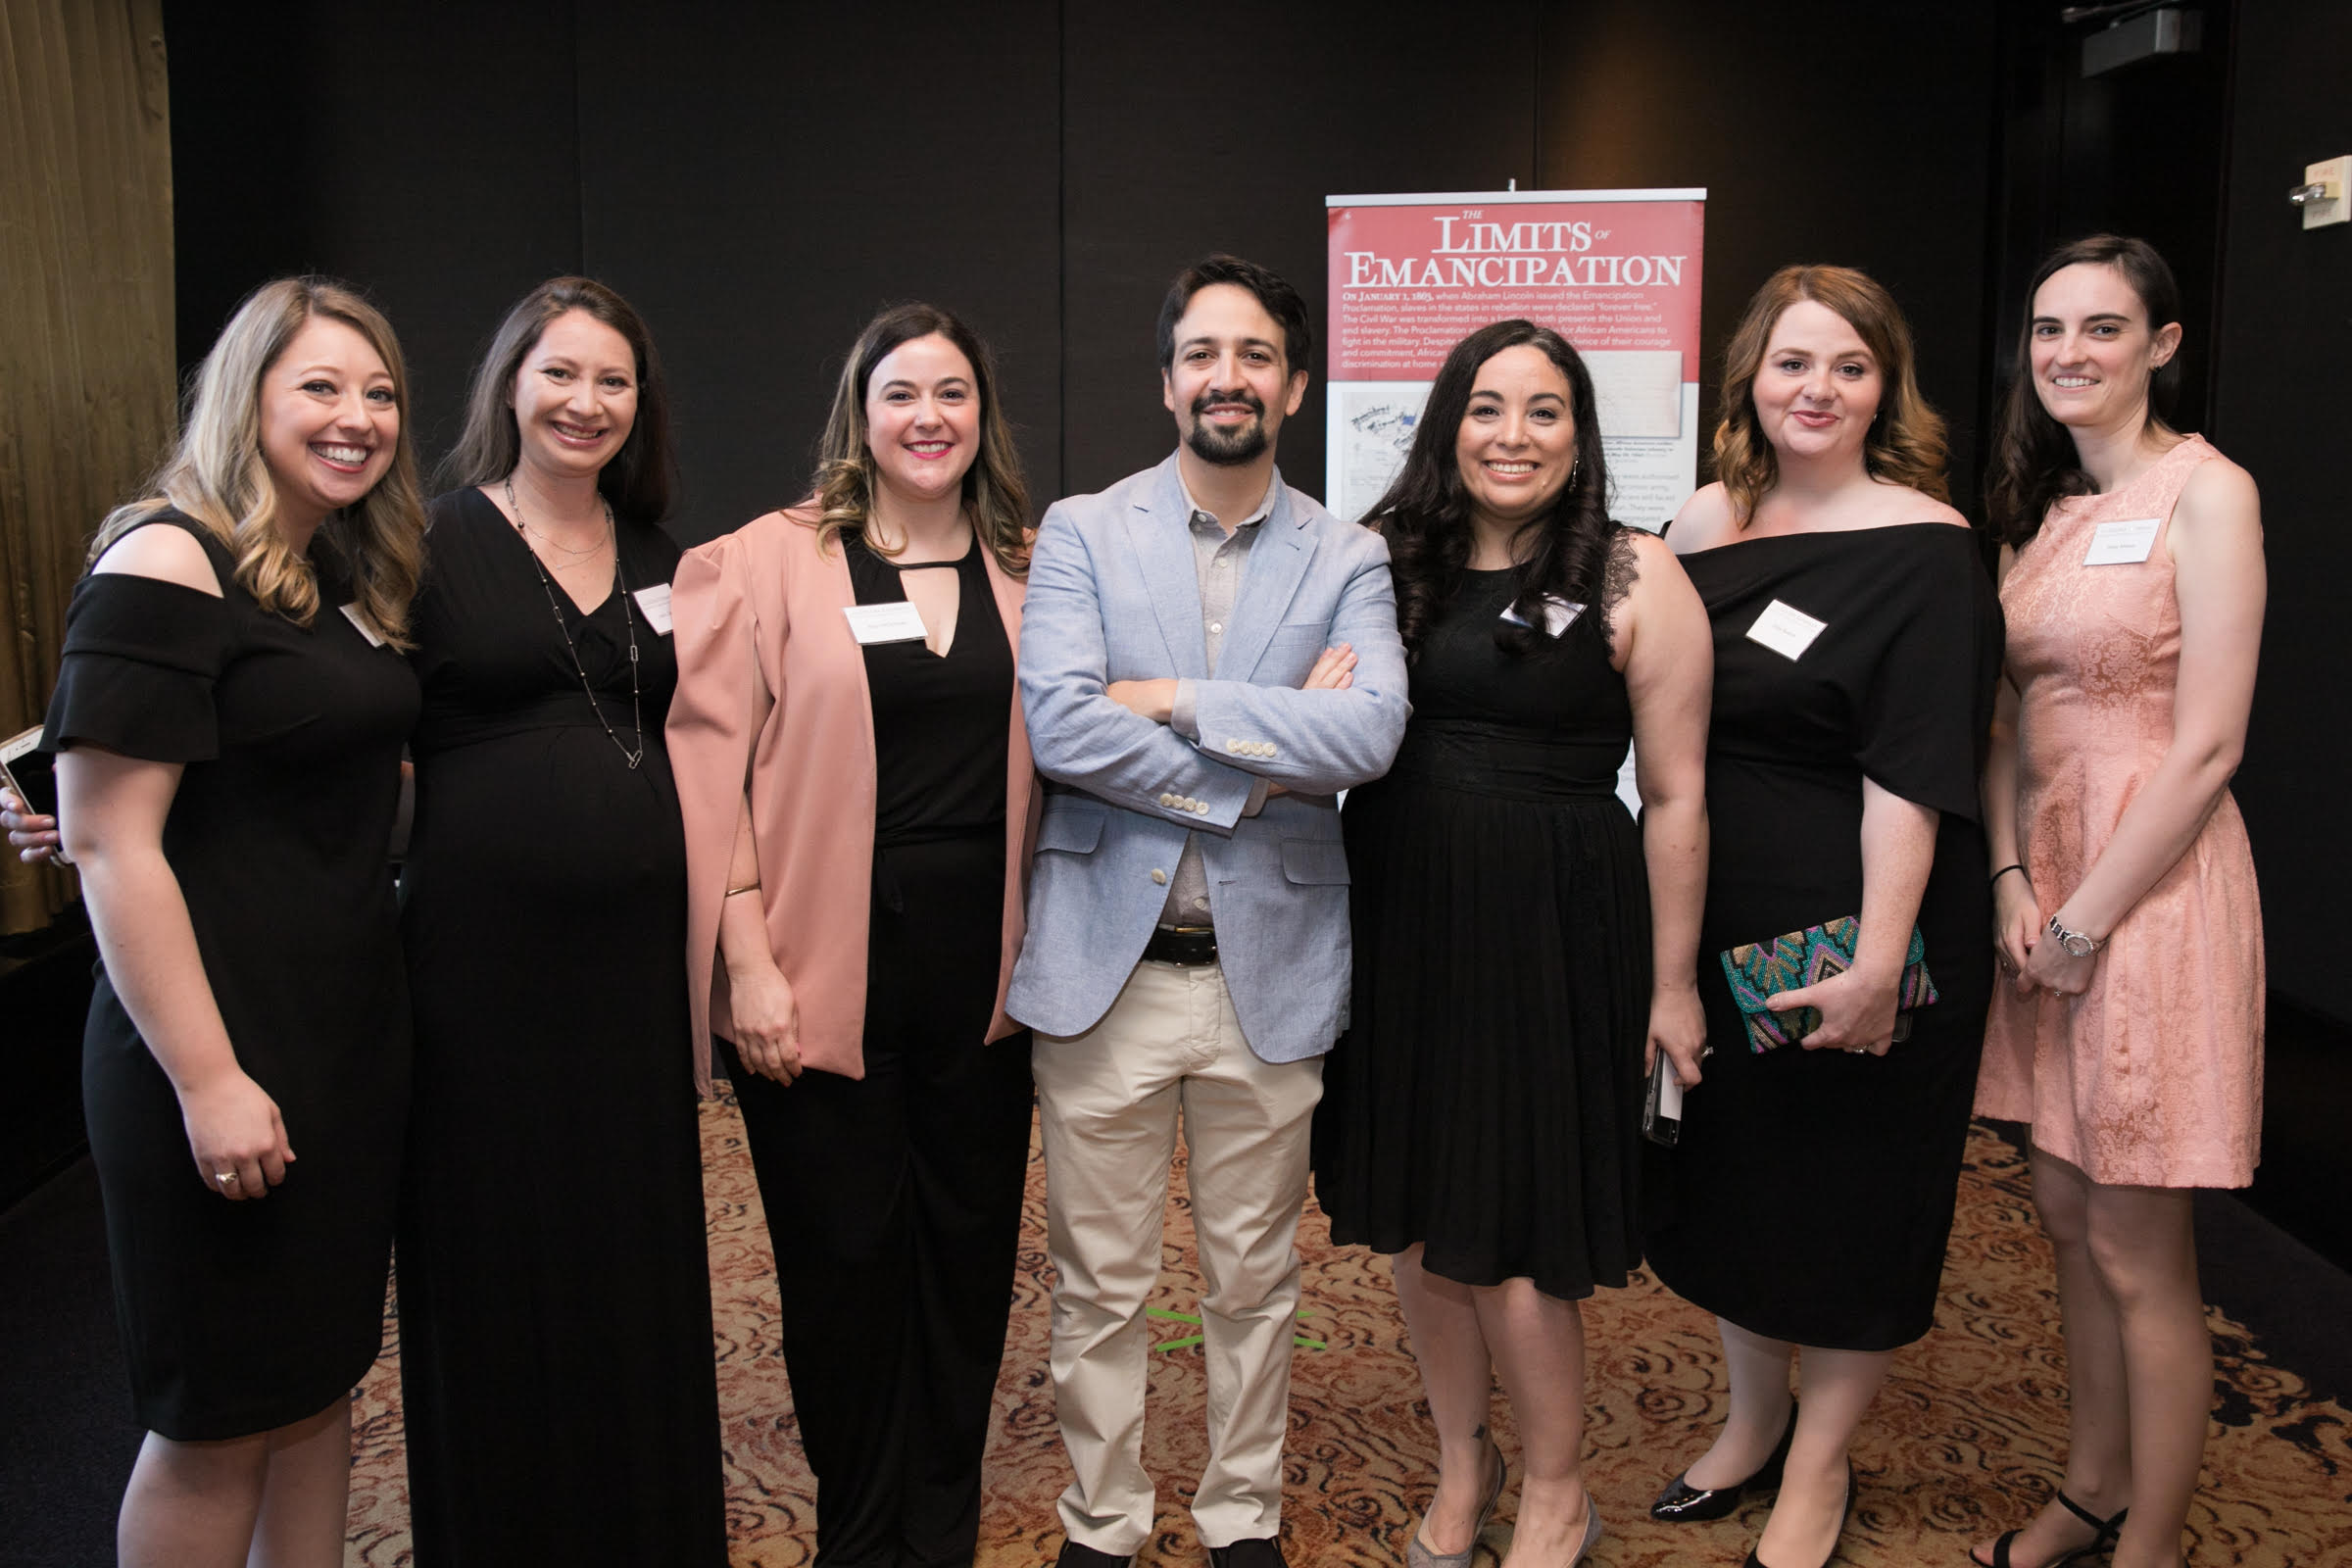 Hamilton composer and original star Lin-Manuel Miranda with Hamilton Education Program team members Allison Taylor, Andrea Zakai, Amy DiChristina, Sasha Rolon Pereira, Leslie Keeton, and Jamie Marcus